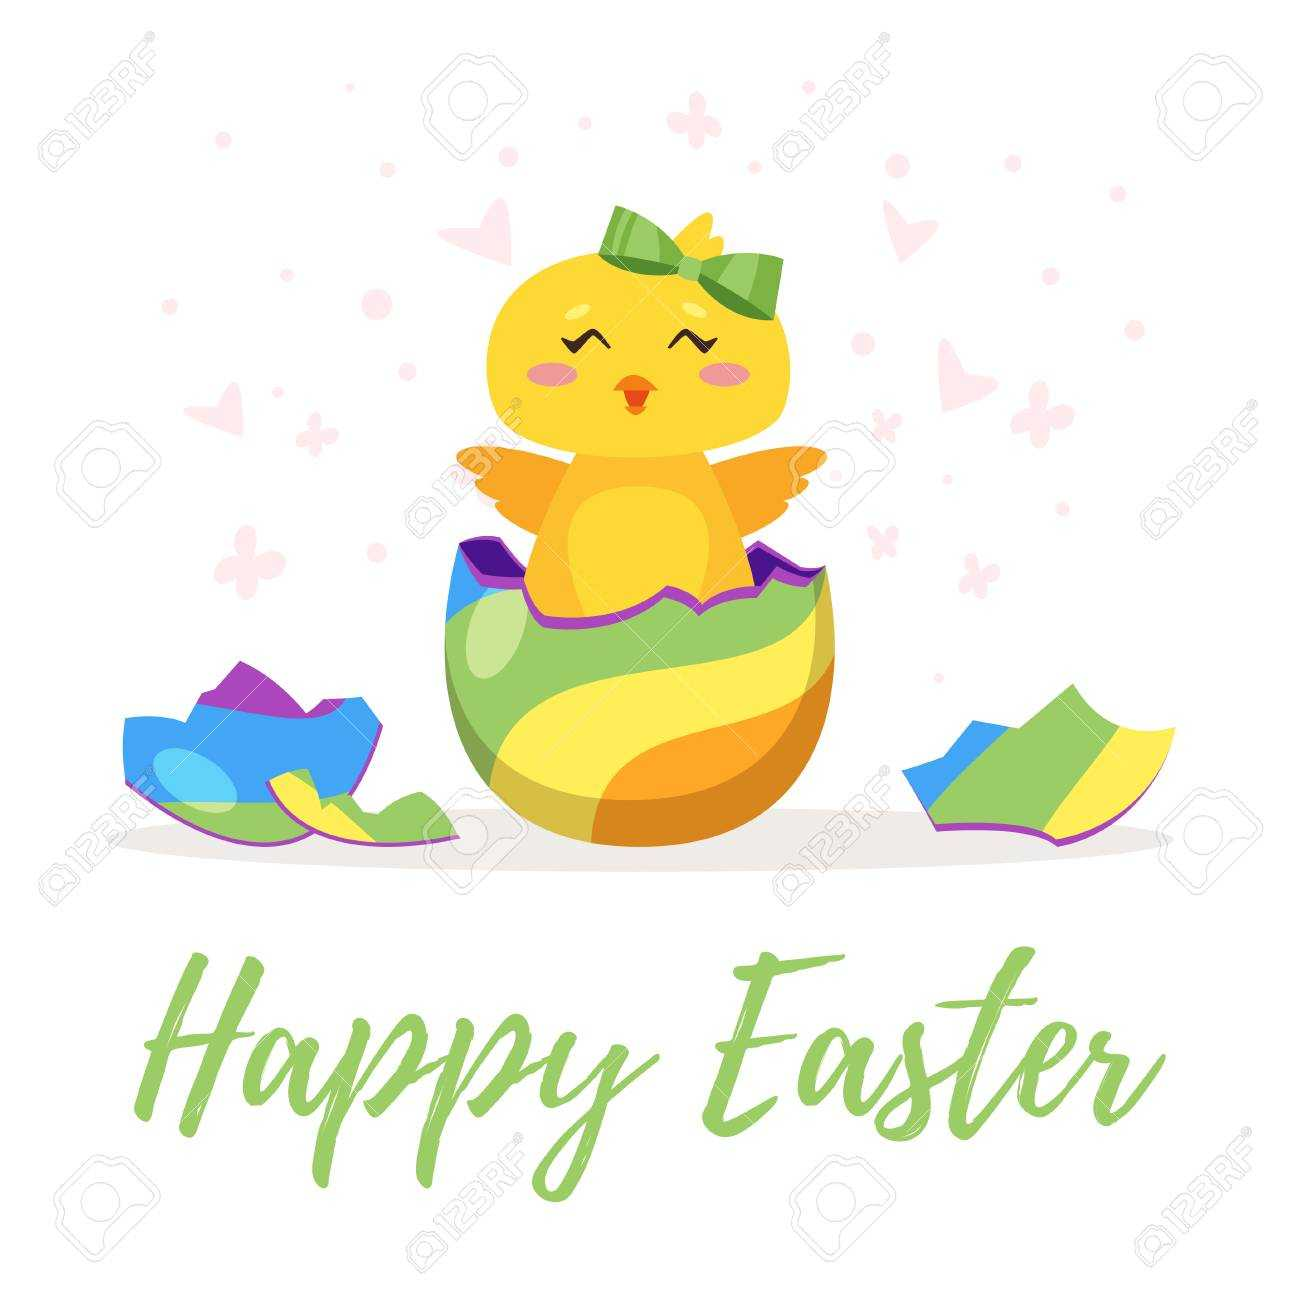 Easter Day Greeting Card Template With Cute Chick Hatched From.. Regarding Easter Chick Card Template